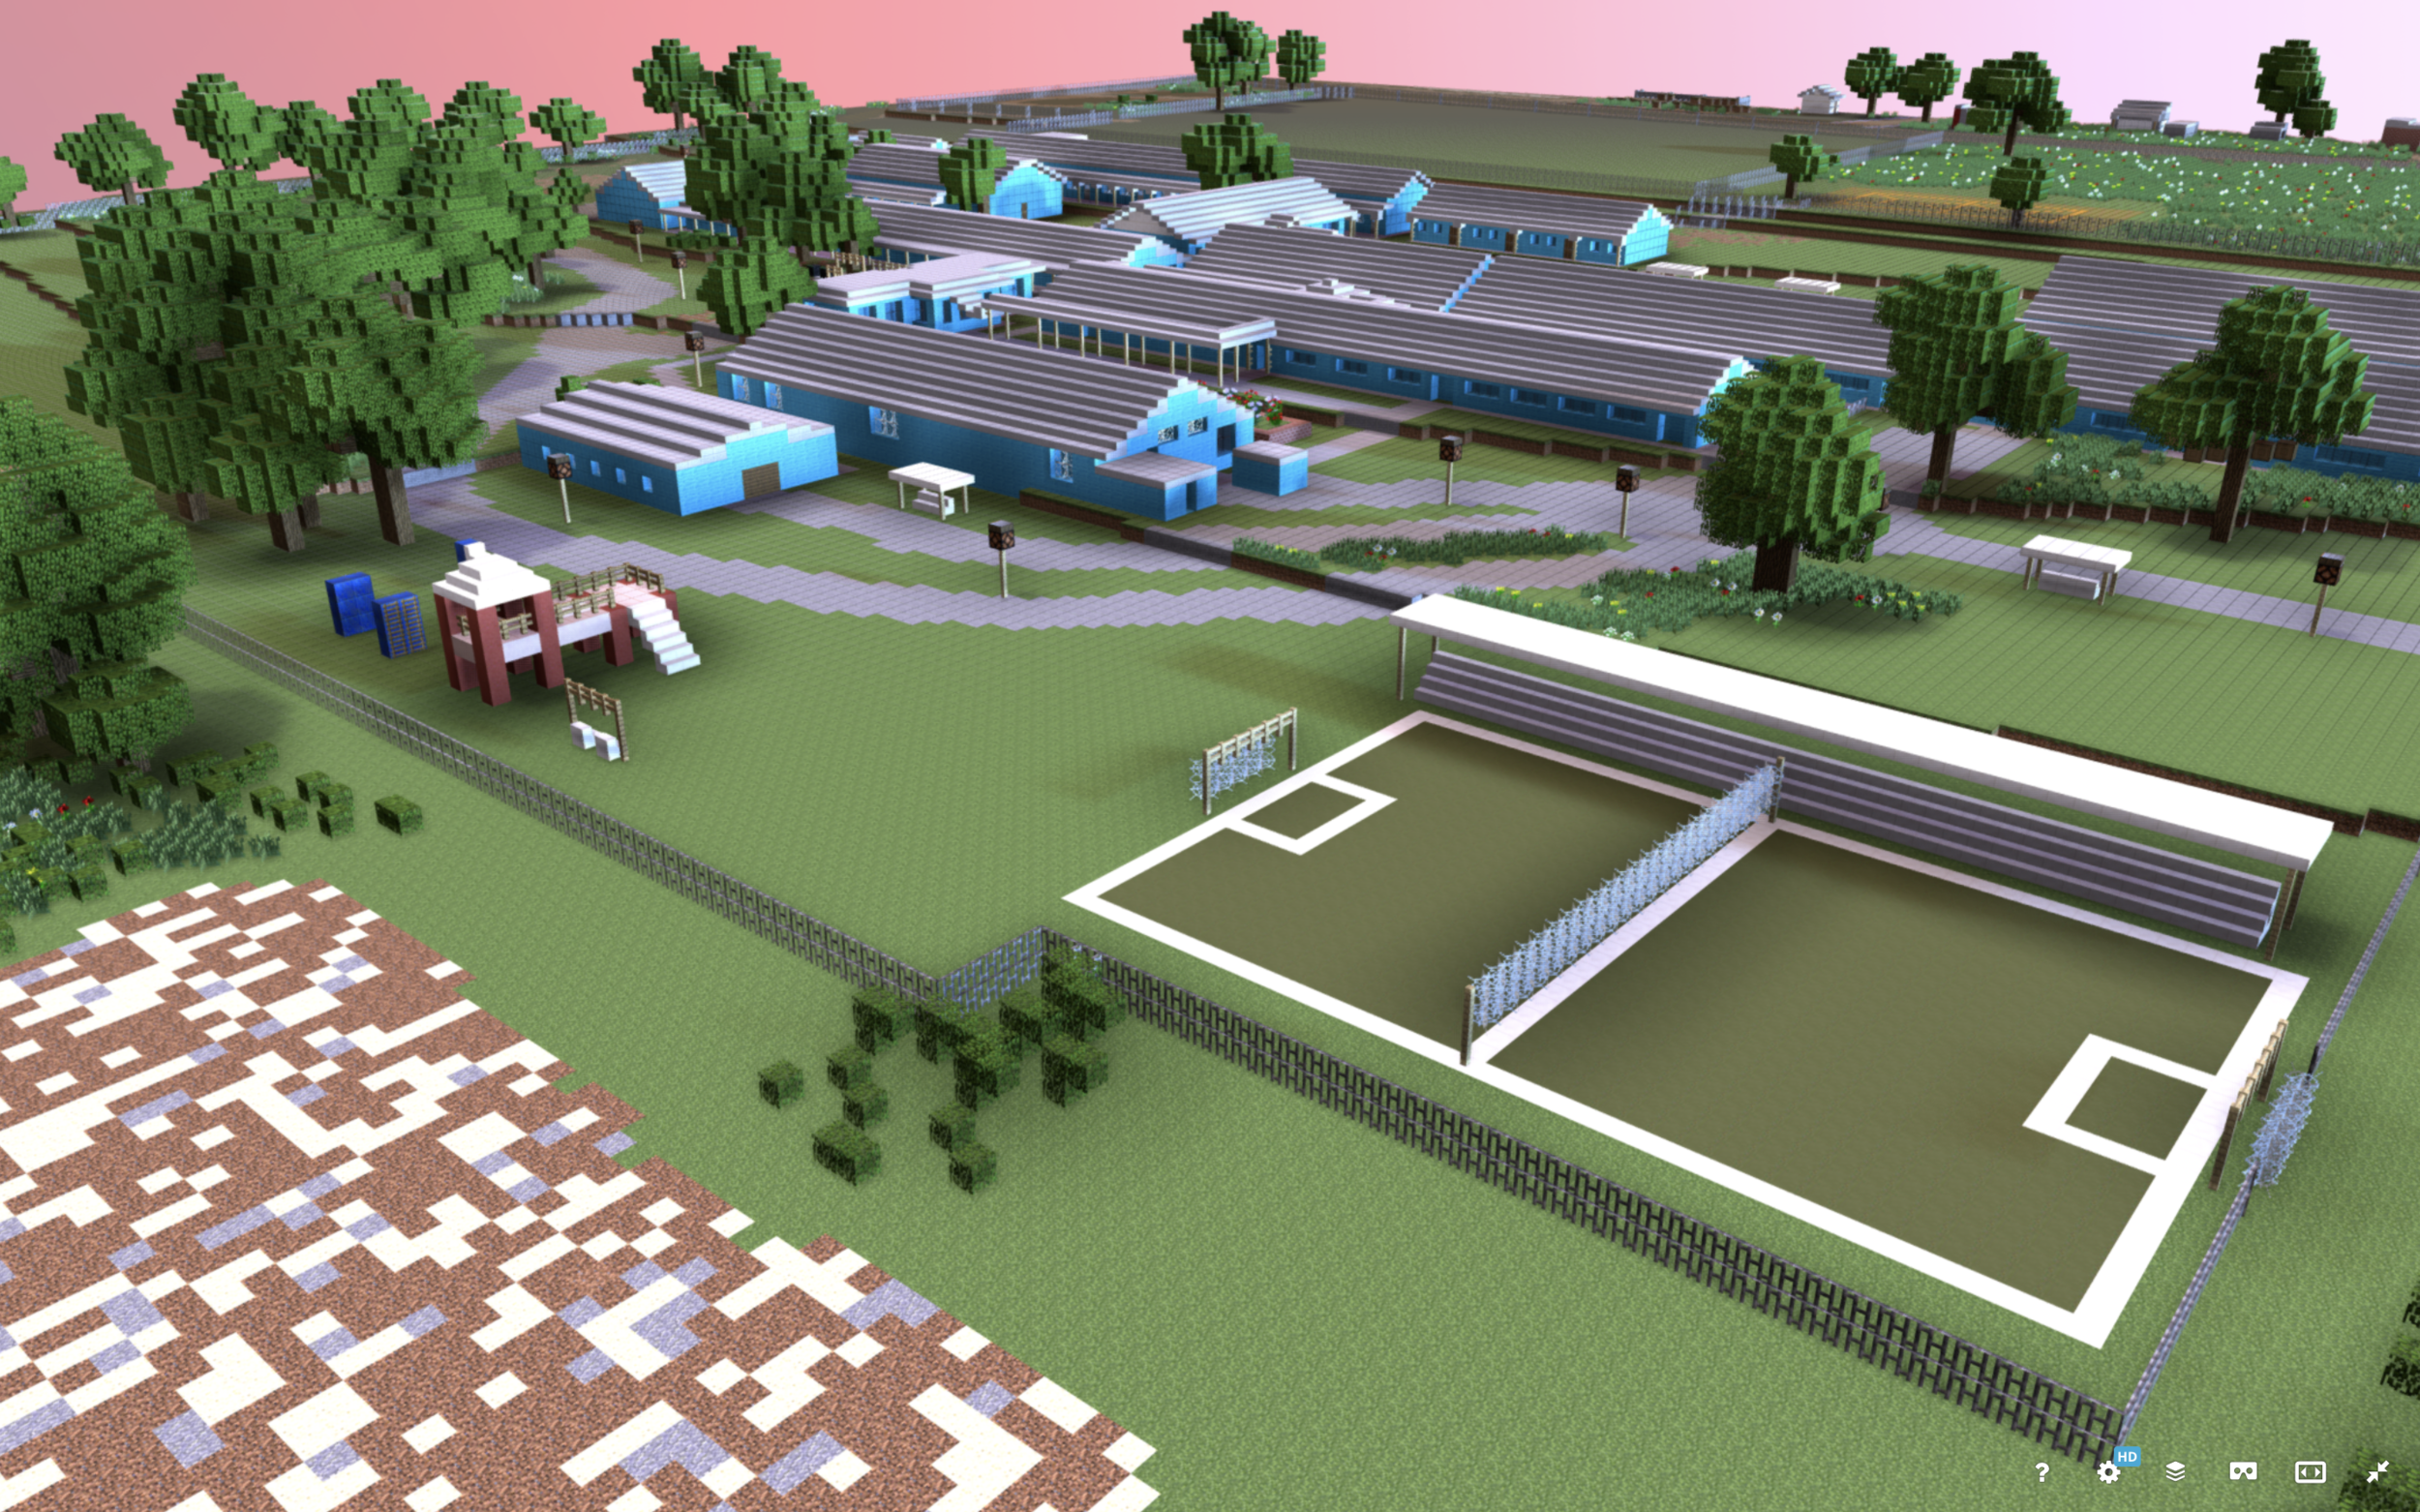 3D Minecraft Model of Community-Designed Public Space, Vukuhambe Special School